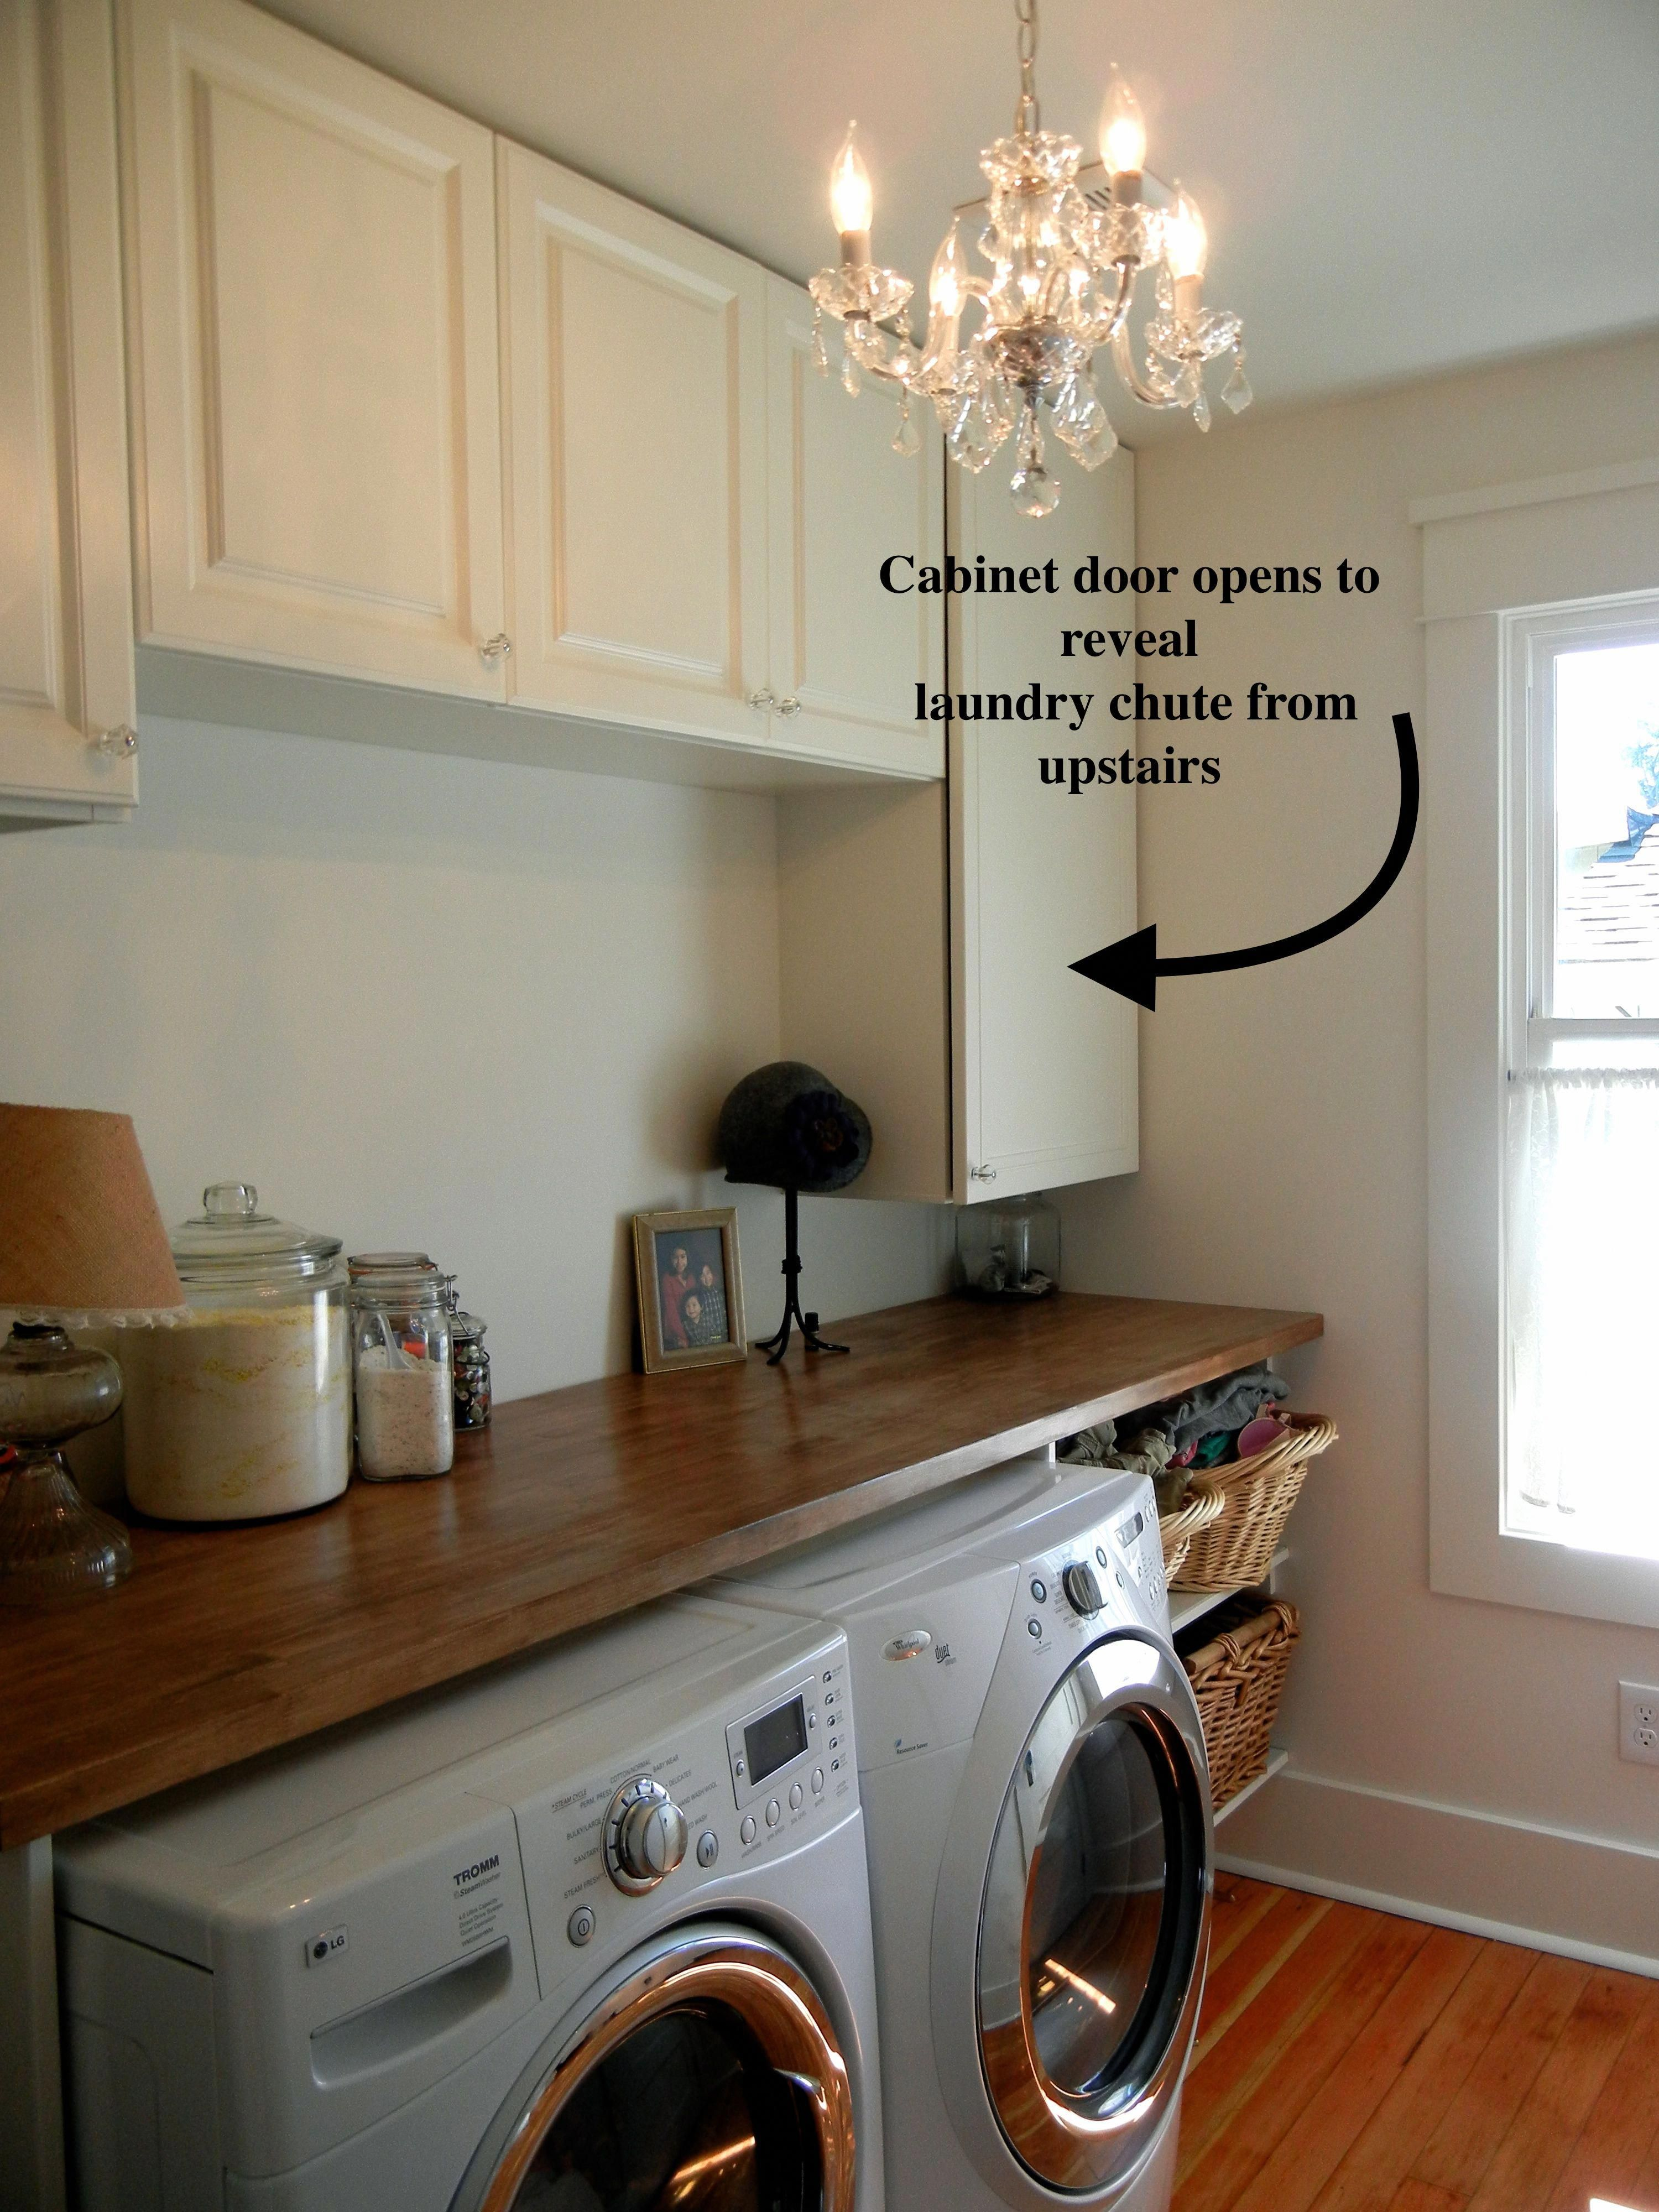 10x10 Laundry Room Layout: Do Not Miss Out These Fantastic Basement Laundry Tips